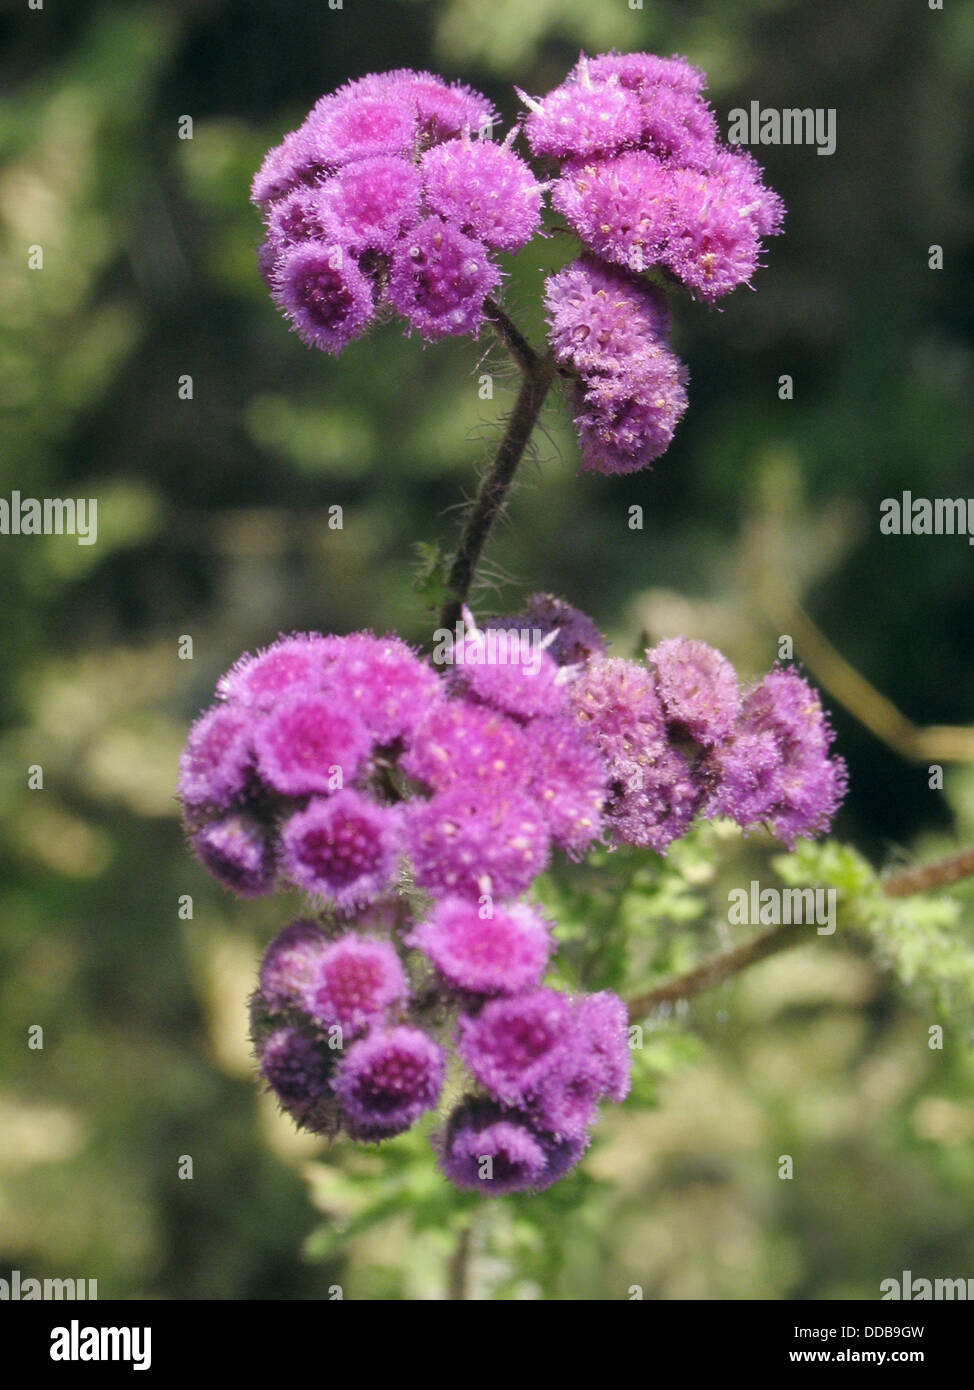 Ageratum conyzoides weed, Asteraceae, ageratum. Herbaceous annual from American tropics, cultivated as ornamental - Stock Image